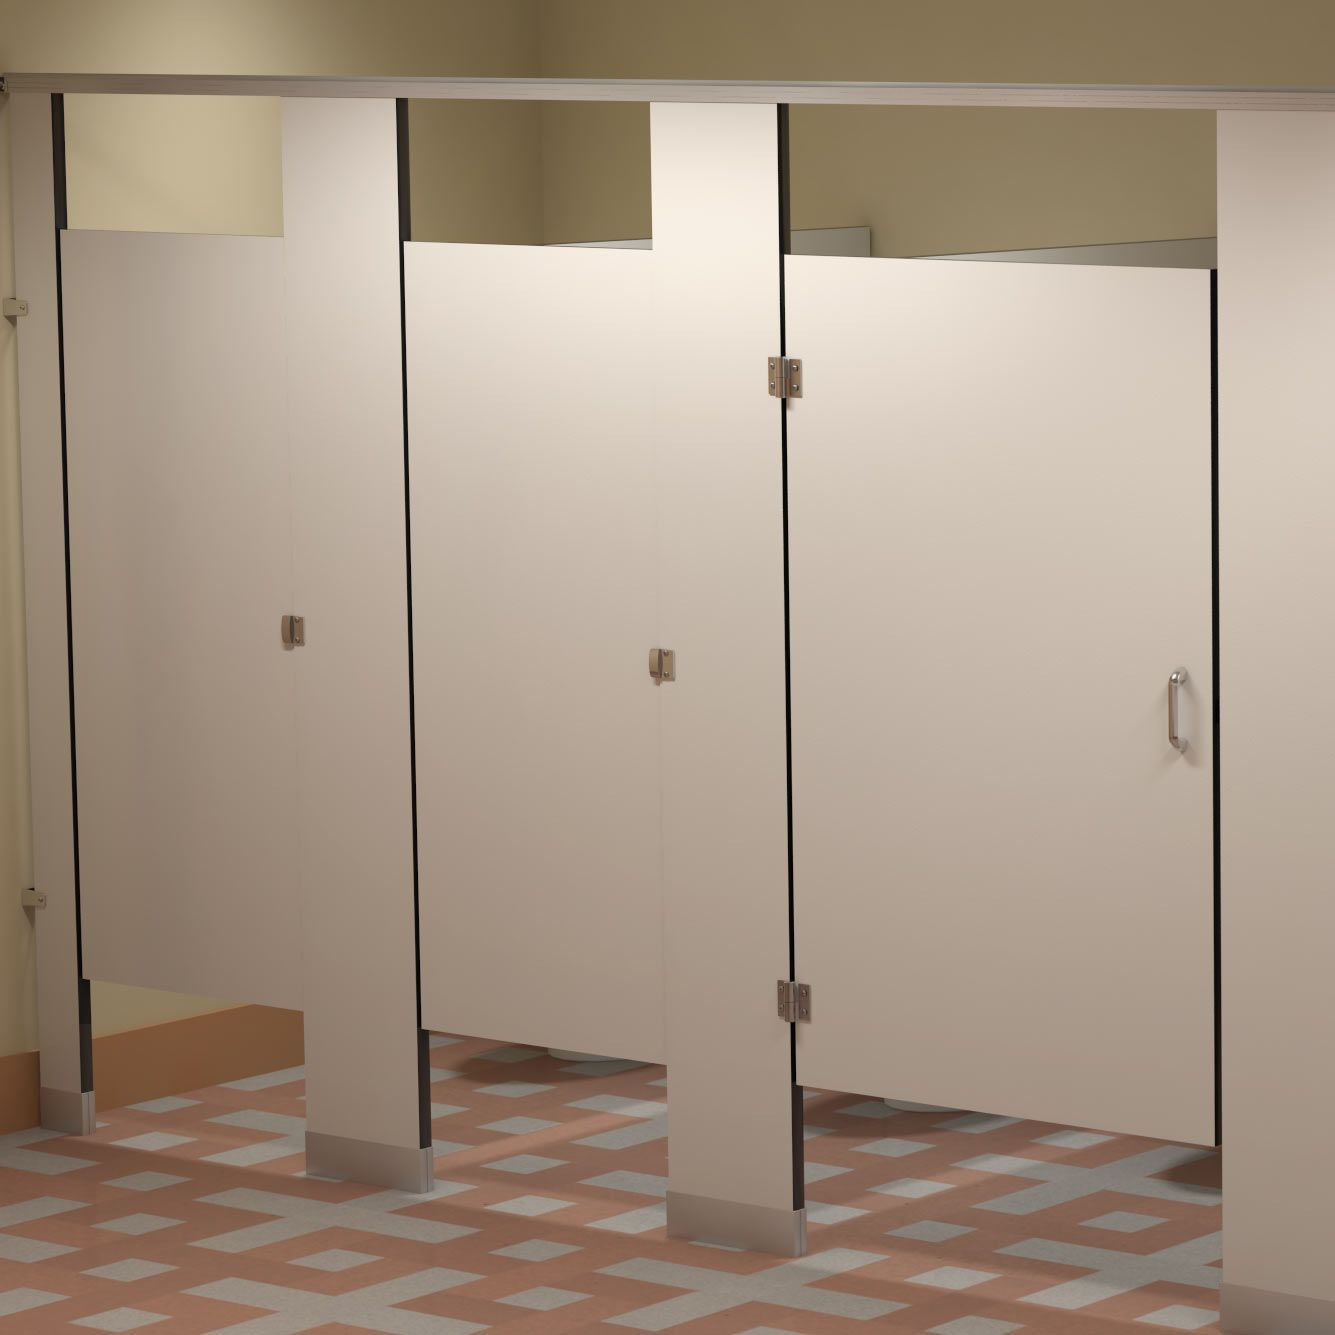 Phenolic Bathroom Partitions Decor Cool Plastic & Phenolic Partitions Cubicles  Toilet Partitions . Review